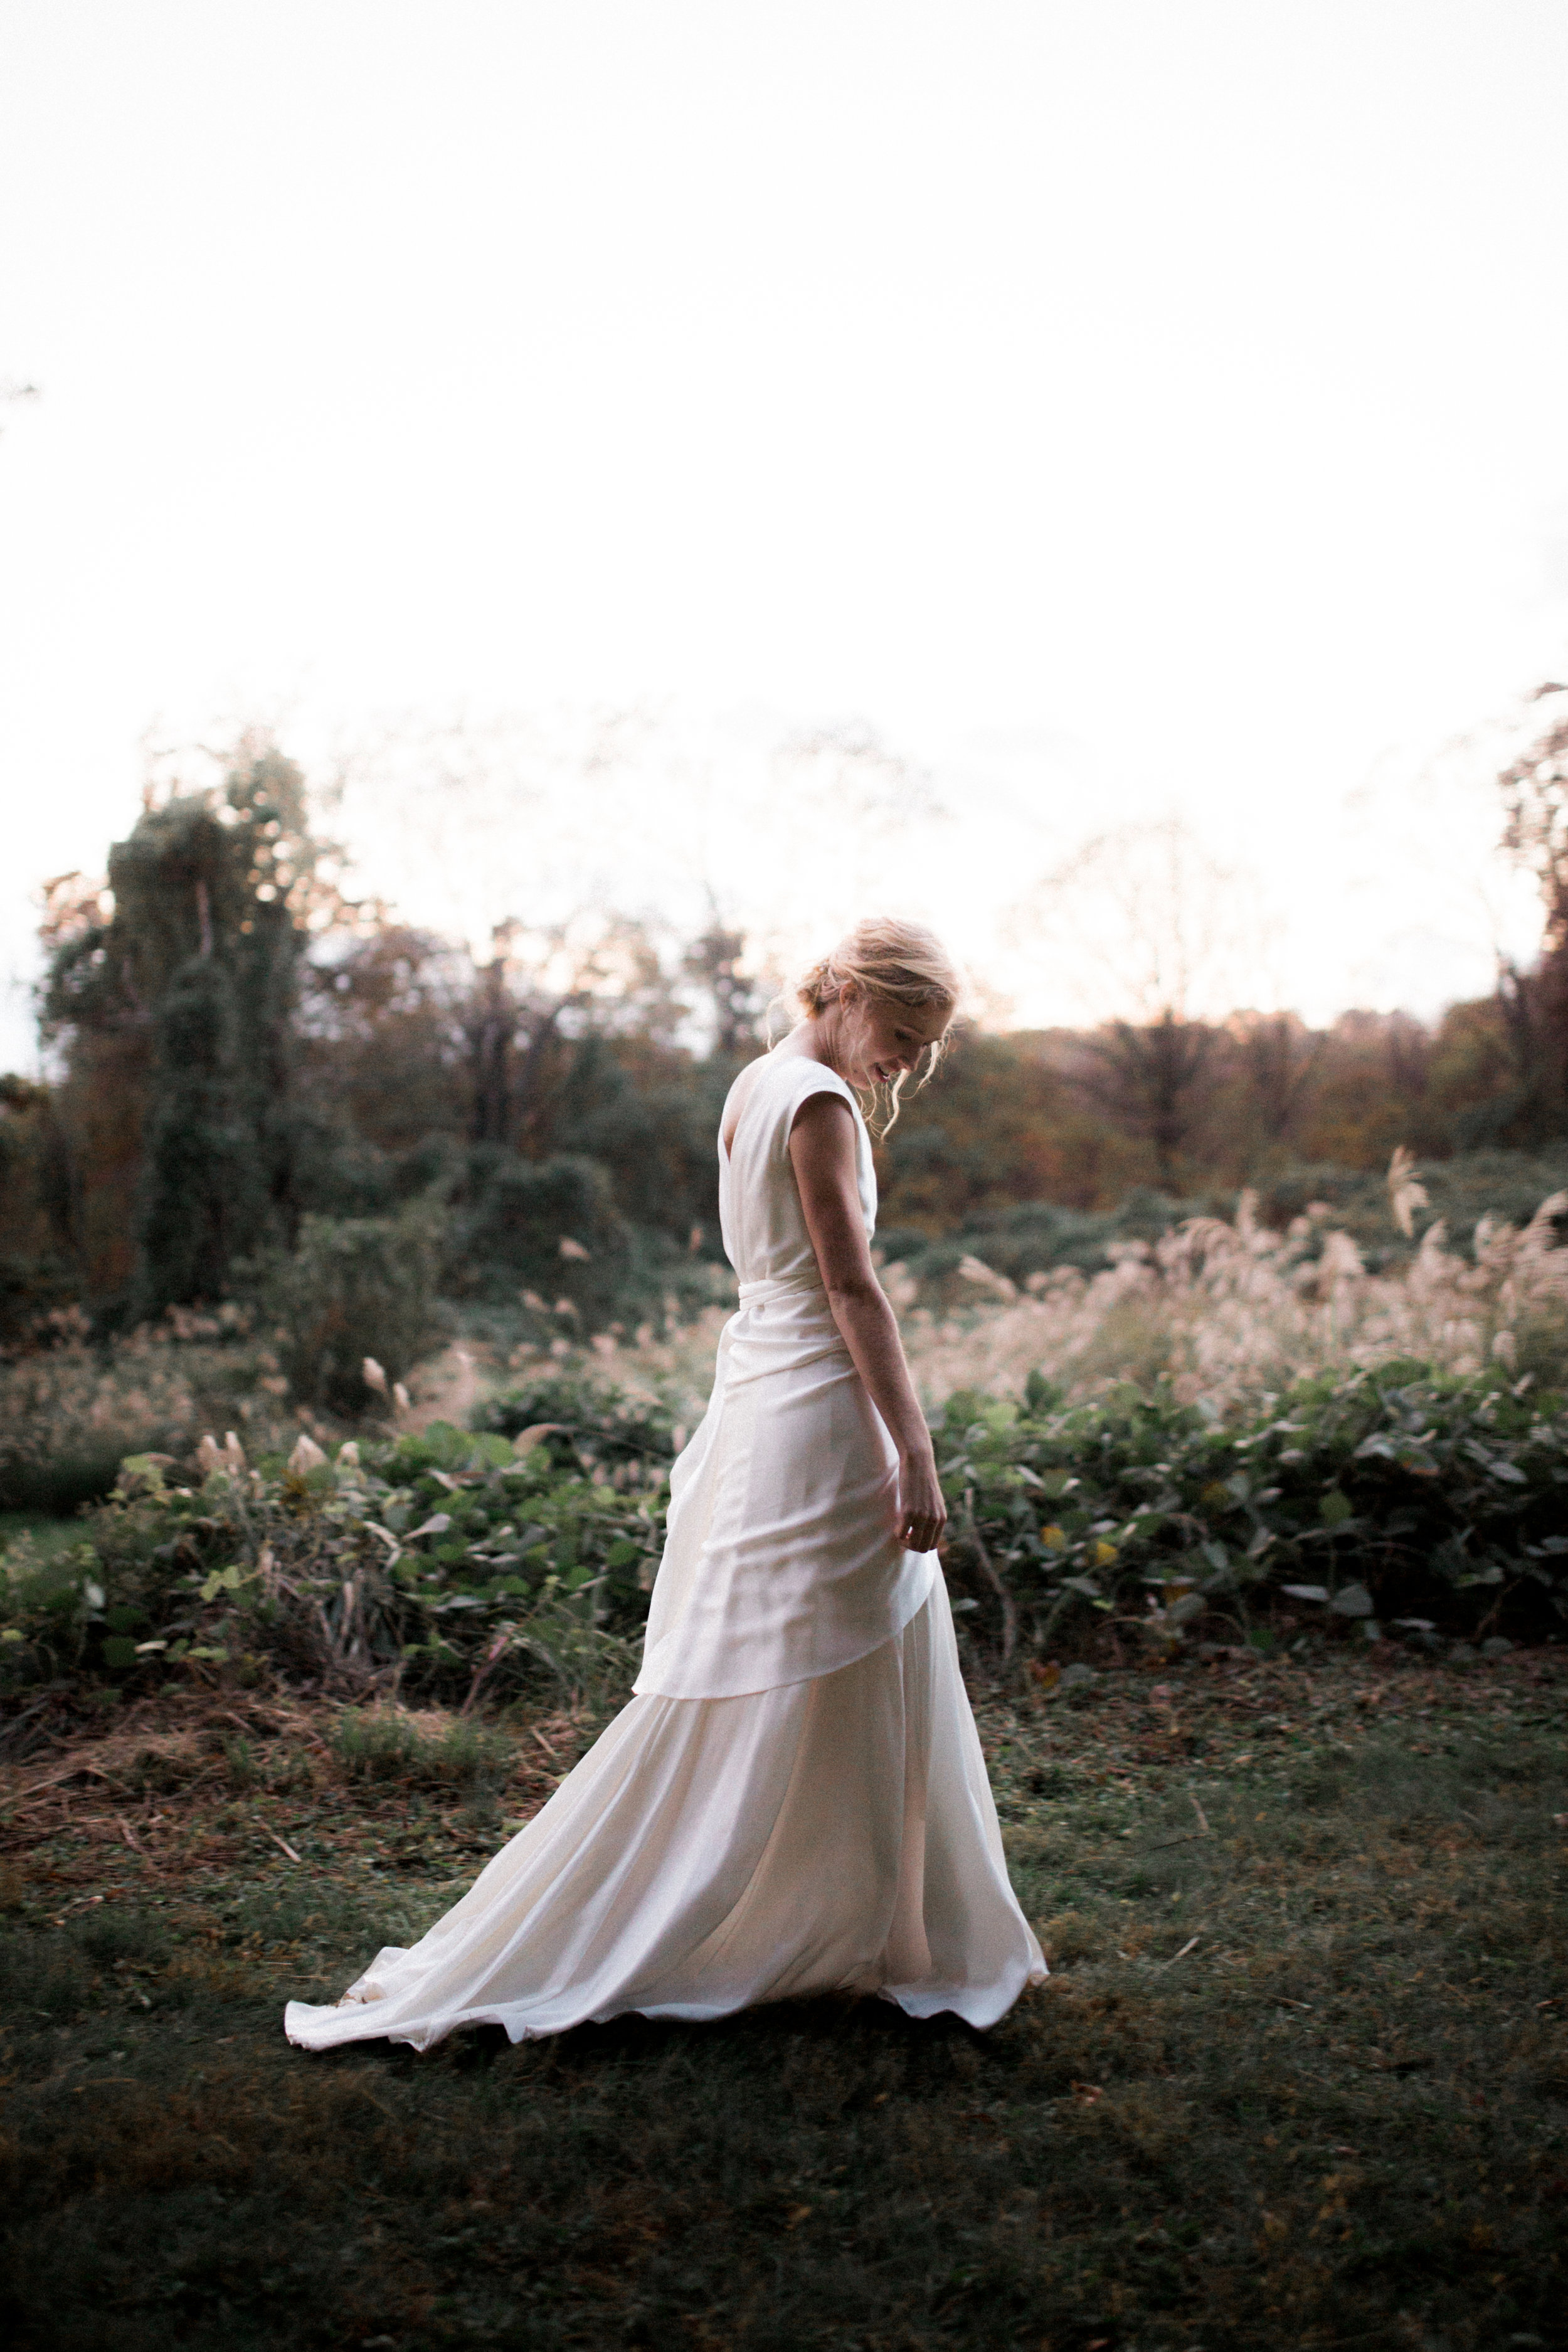 Pemberly_Styled_Shoot_Fall_2016_Anywhere_and_Somewhere-189.JPG